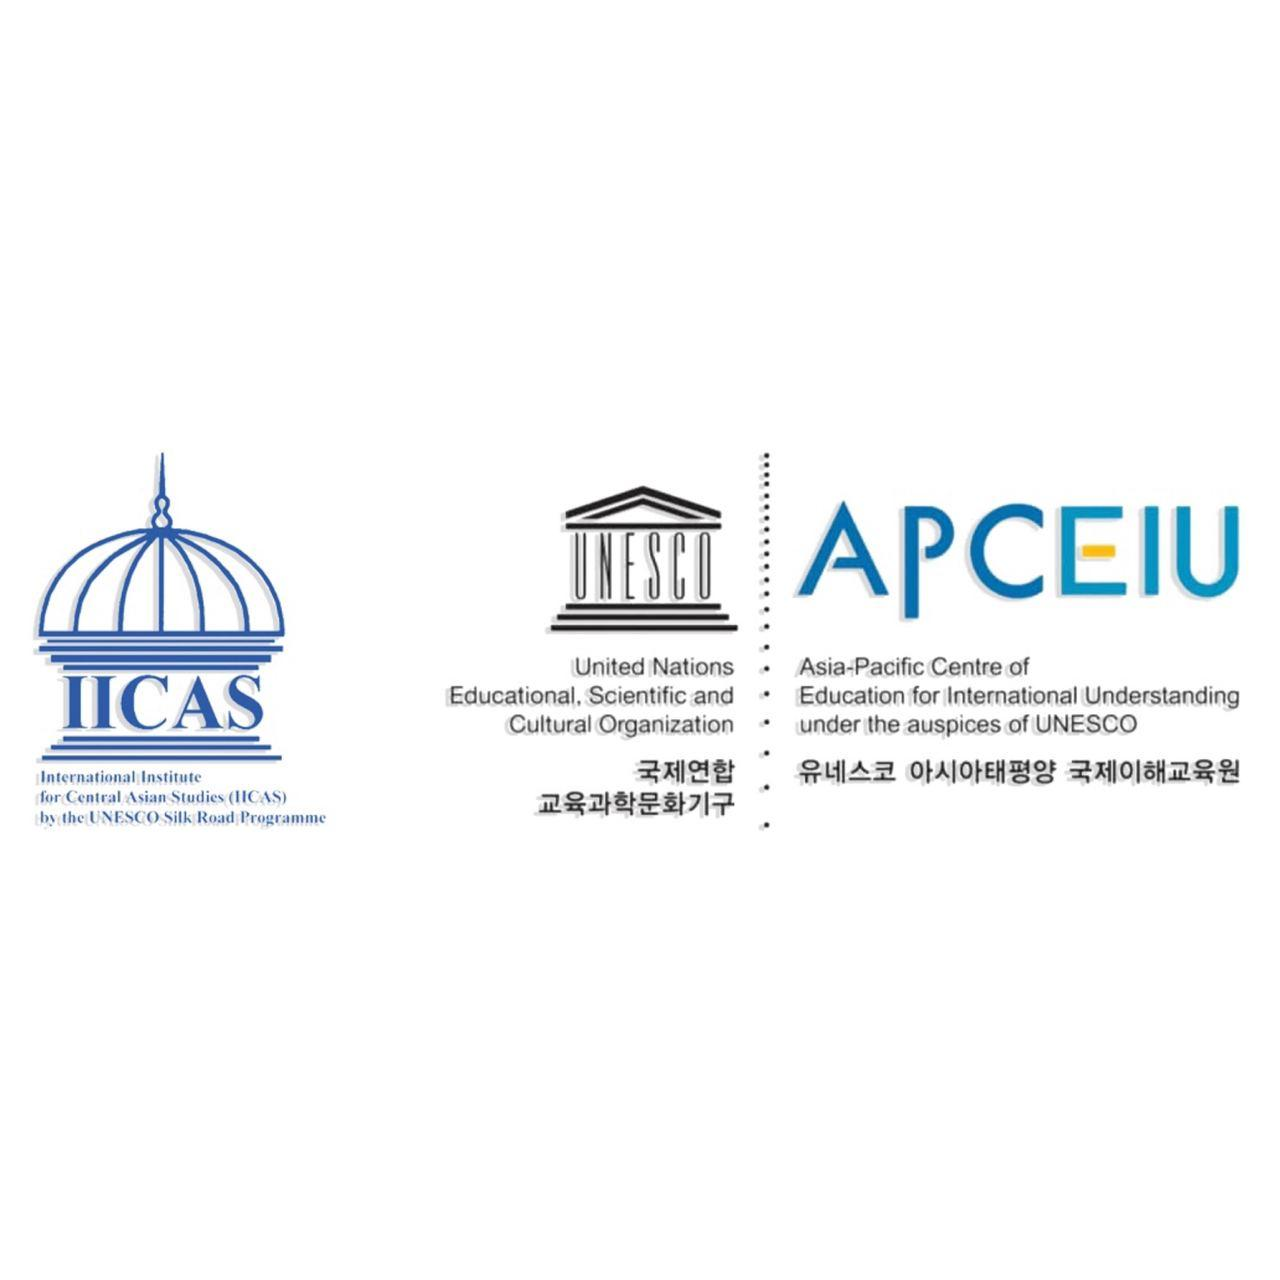 A joint project with the APCEIU has just been successfully completed.